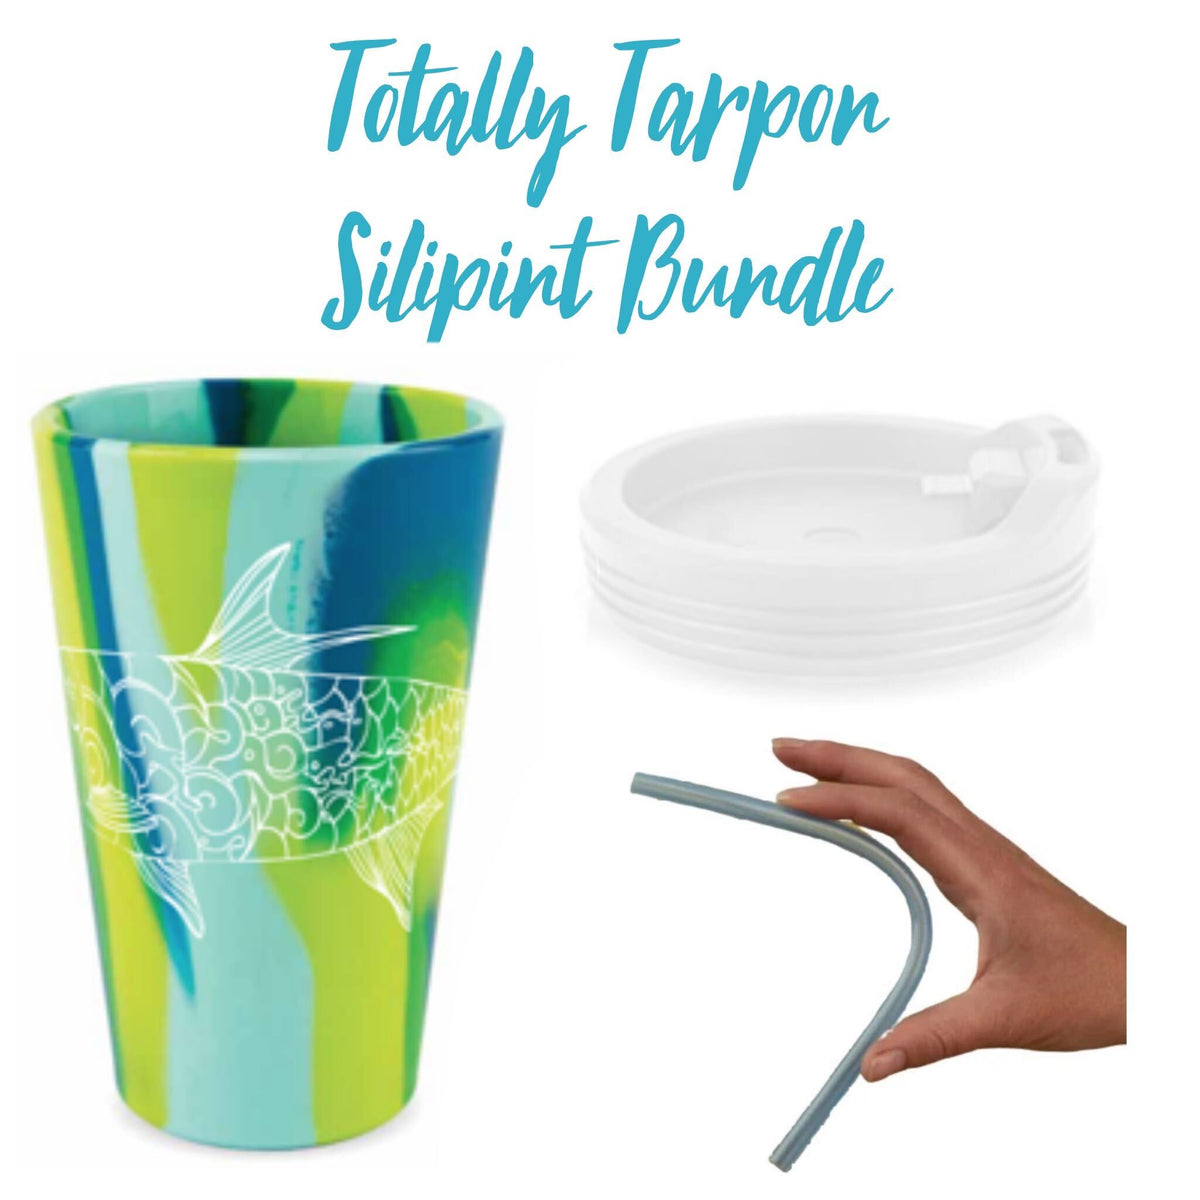 Totally Tarpon Silipint Bundle